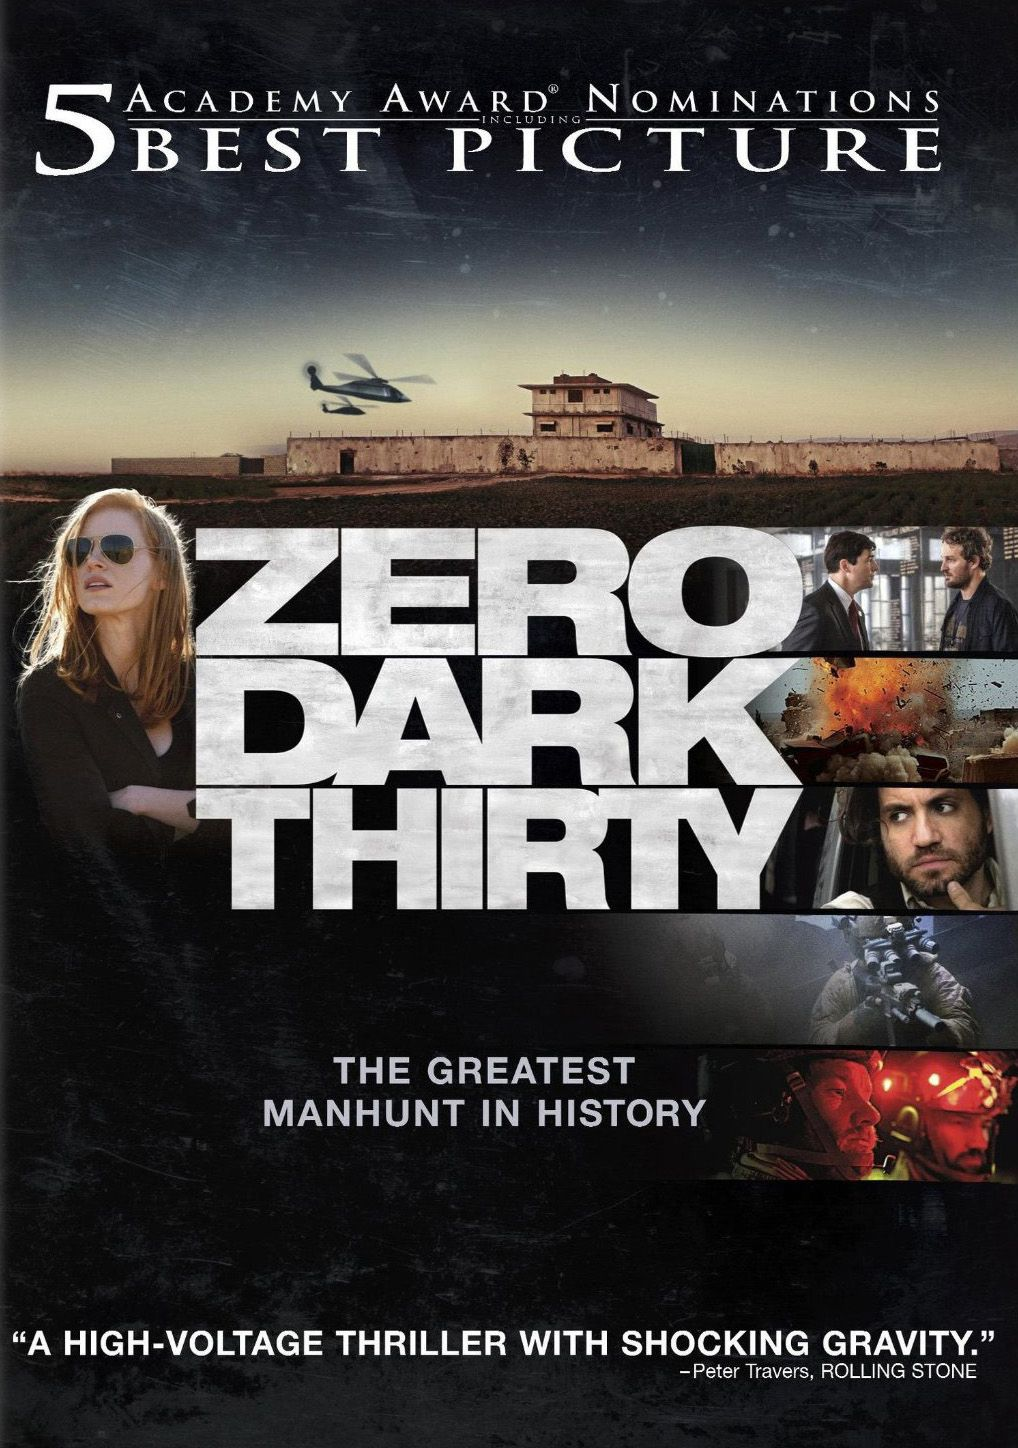 Publicity still for Zero Dark Thirty